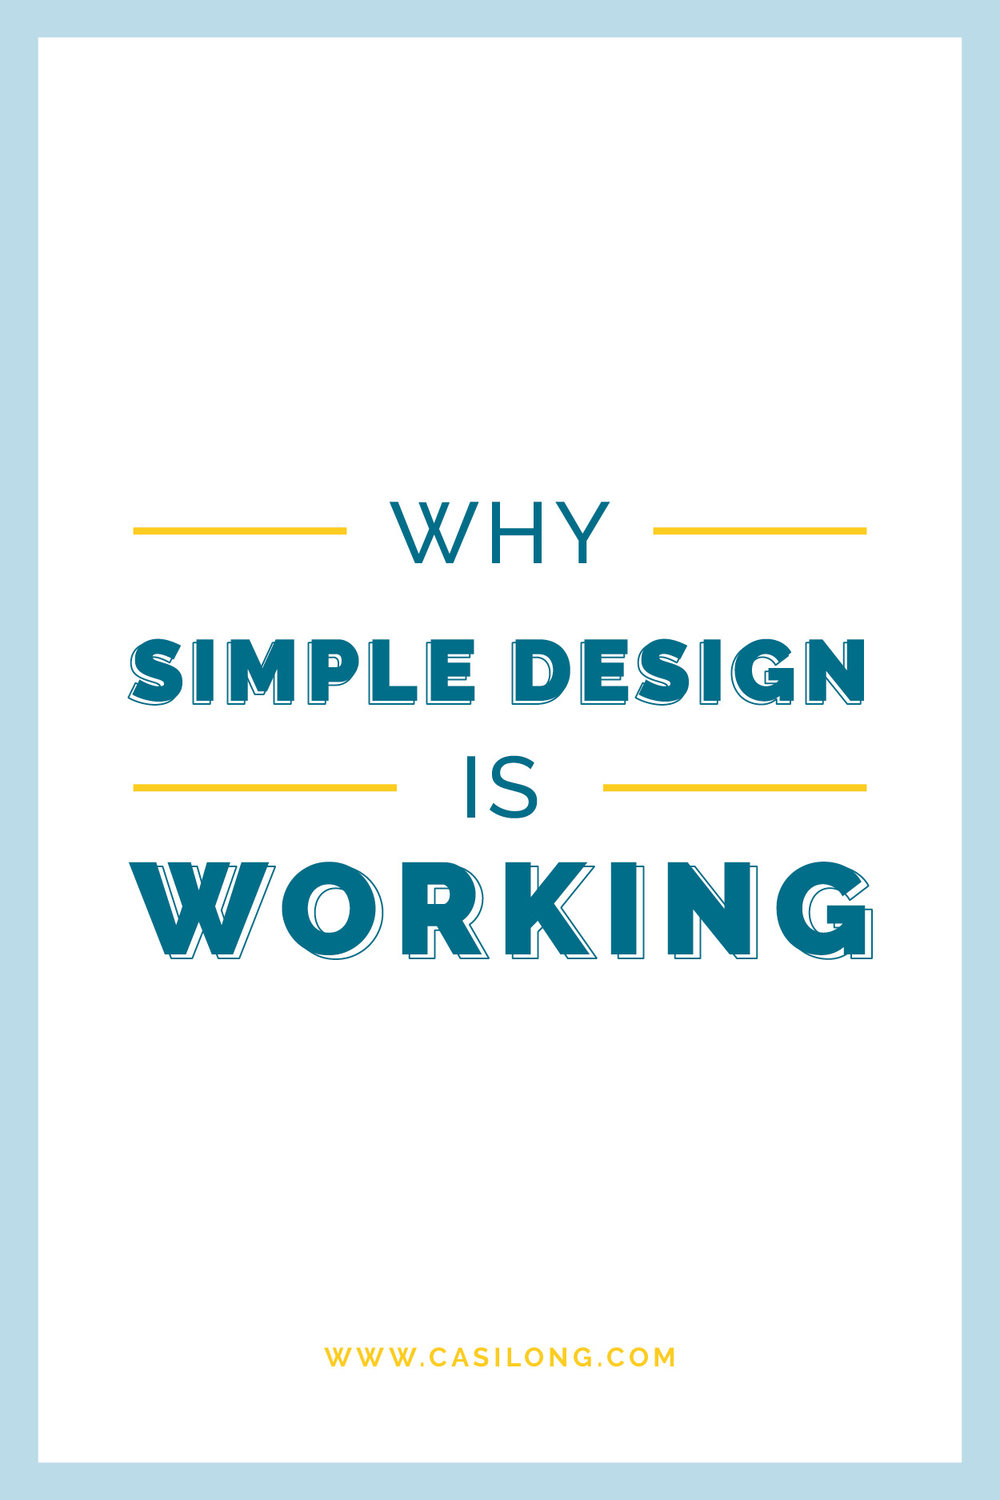 Why Simple Design is Working | casilong.com/blog